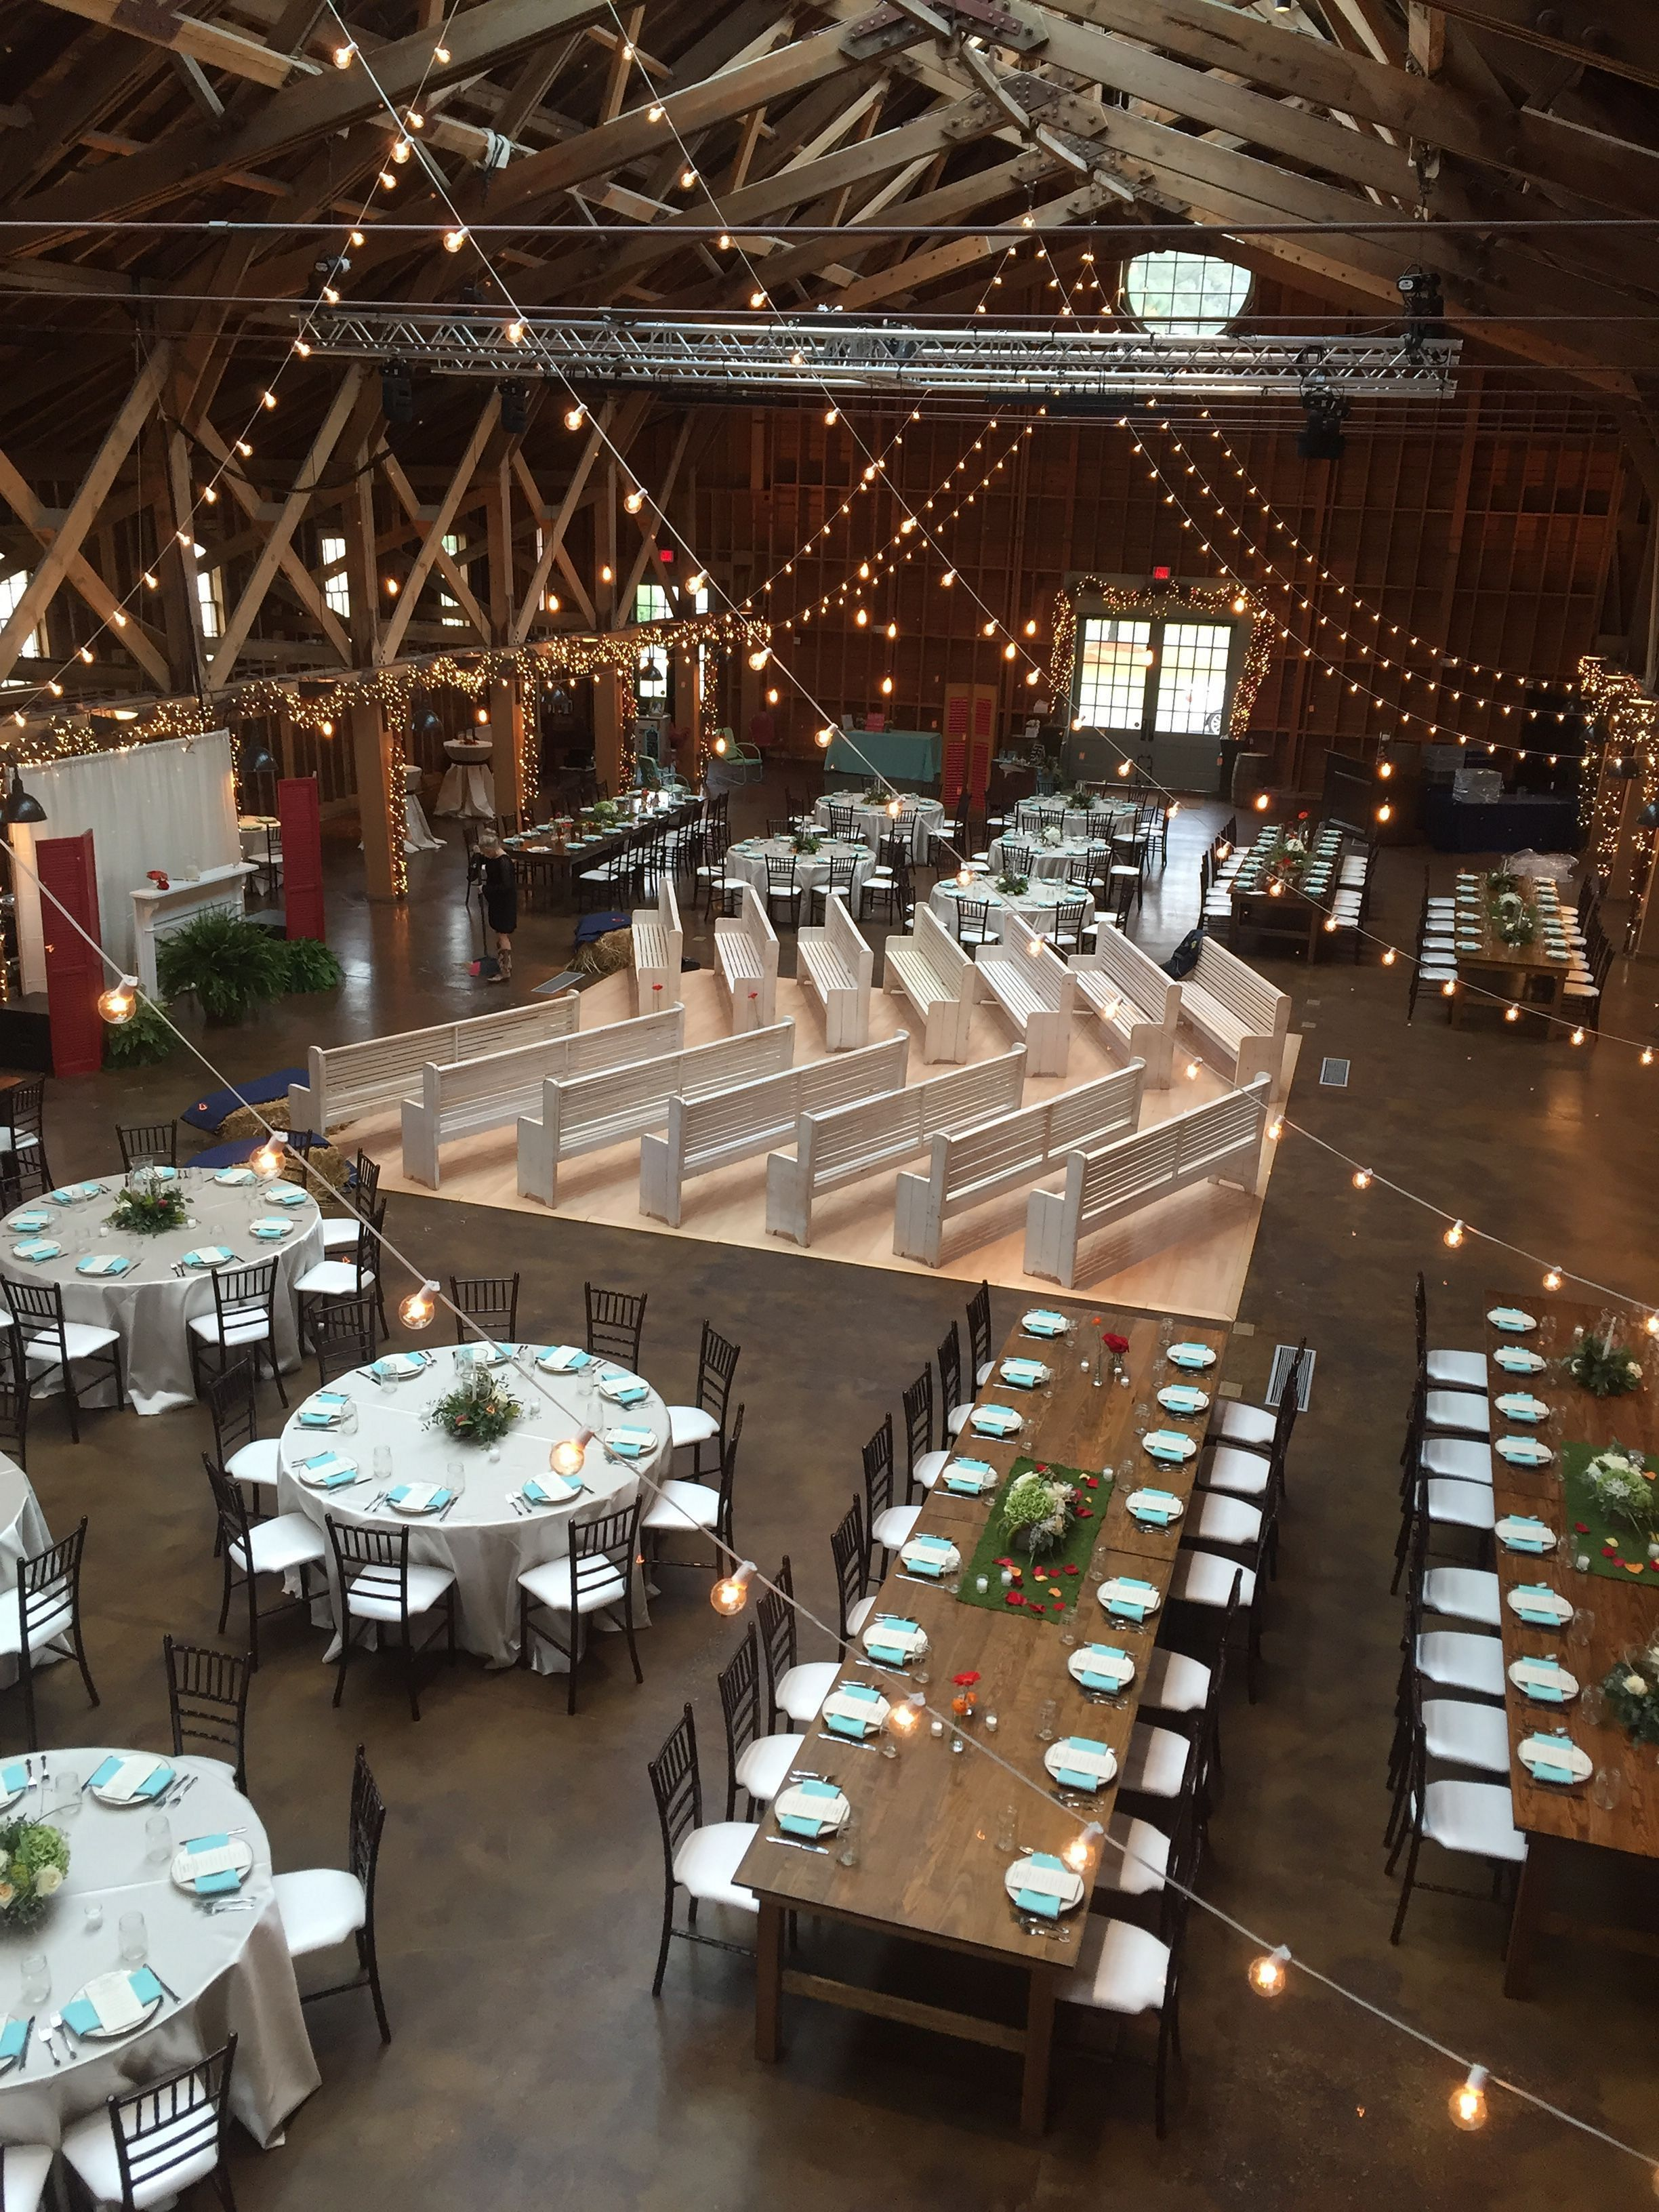 venue wedding barn decorations amazing nc fair venues oosile pinehurst farm barns rustic para events reception weddings decoration vision table